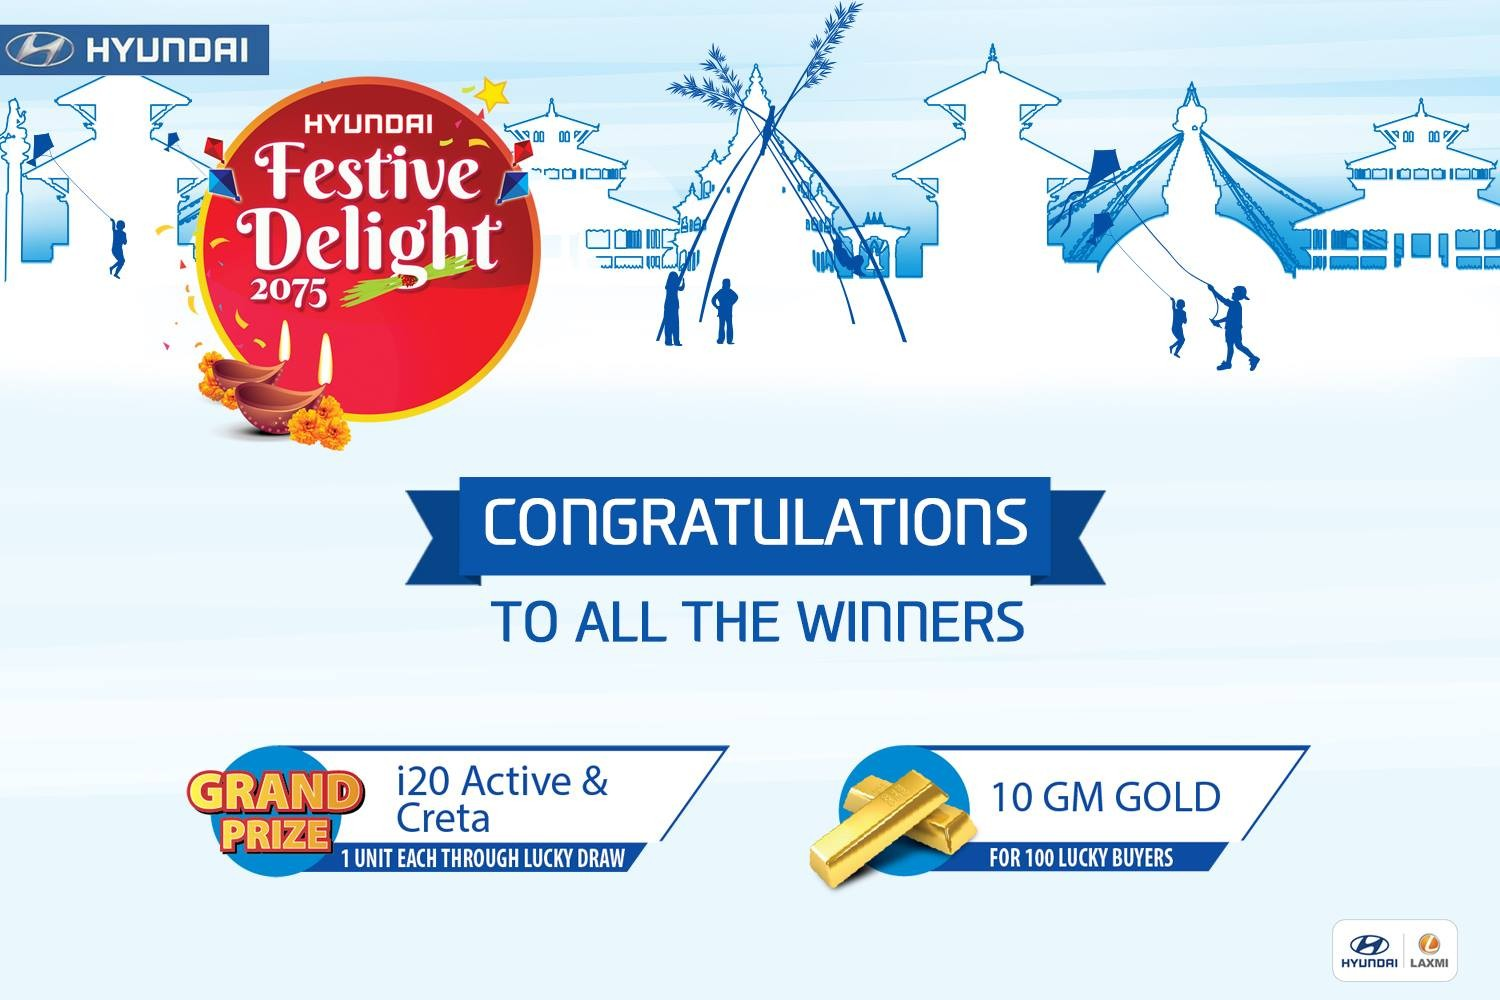 Winners of Hyundai Festive Delight 2075